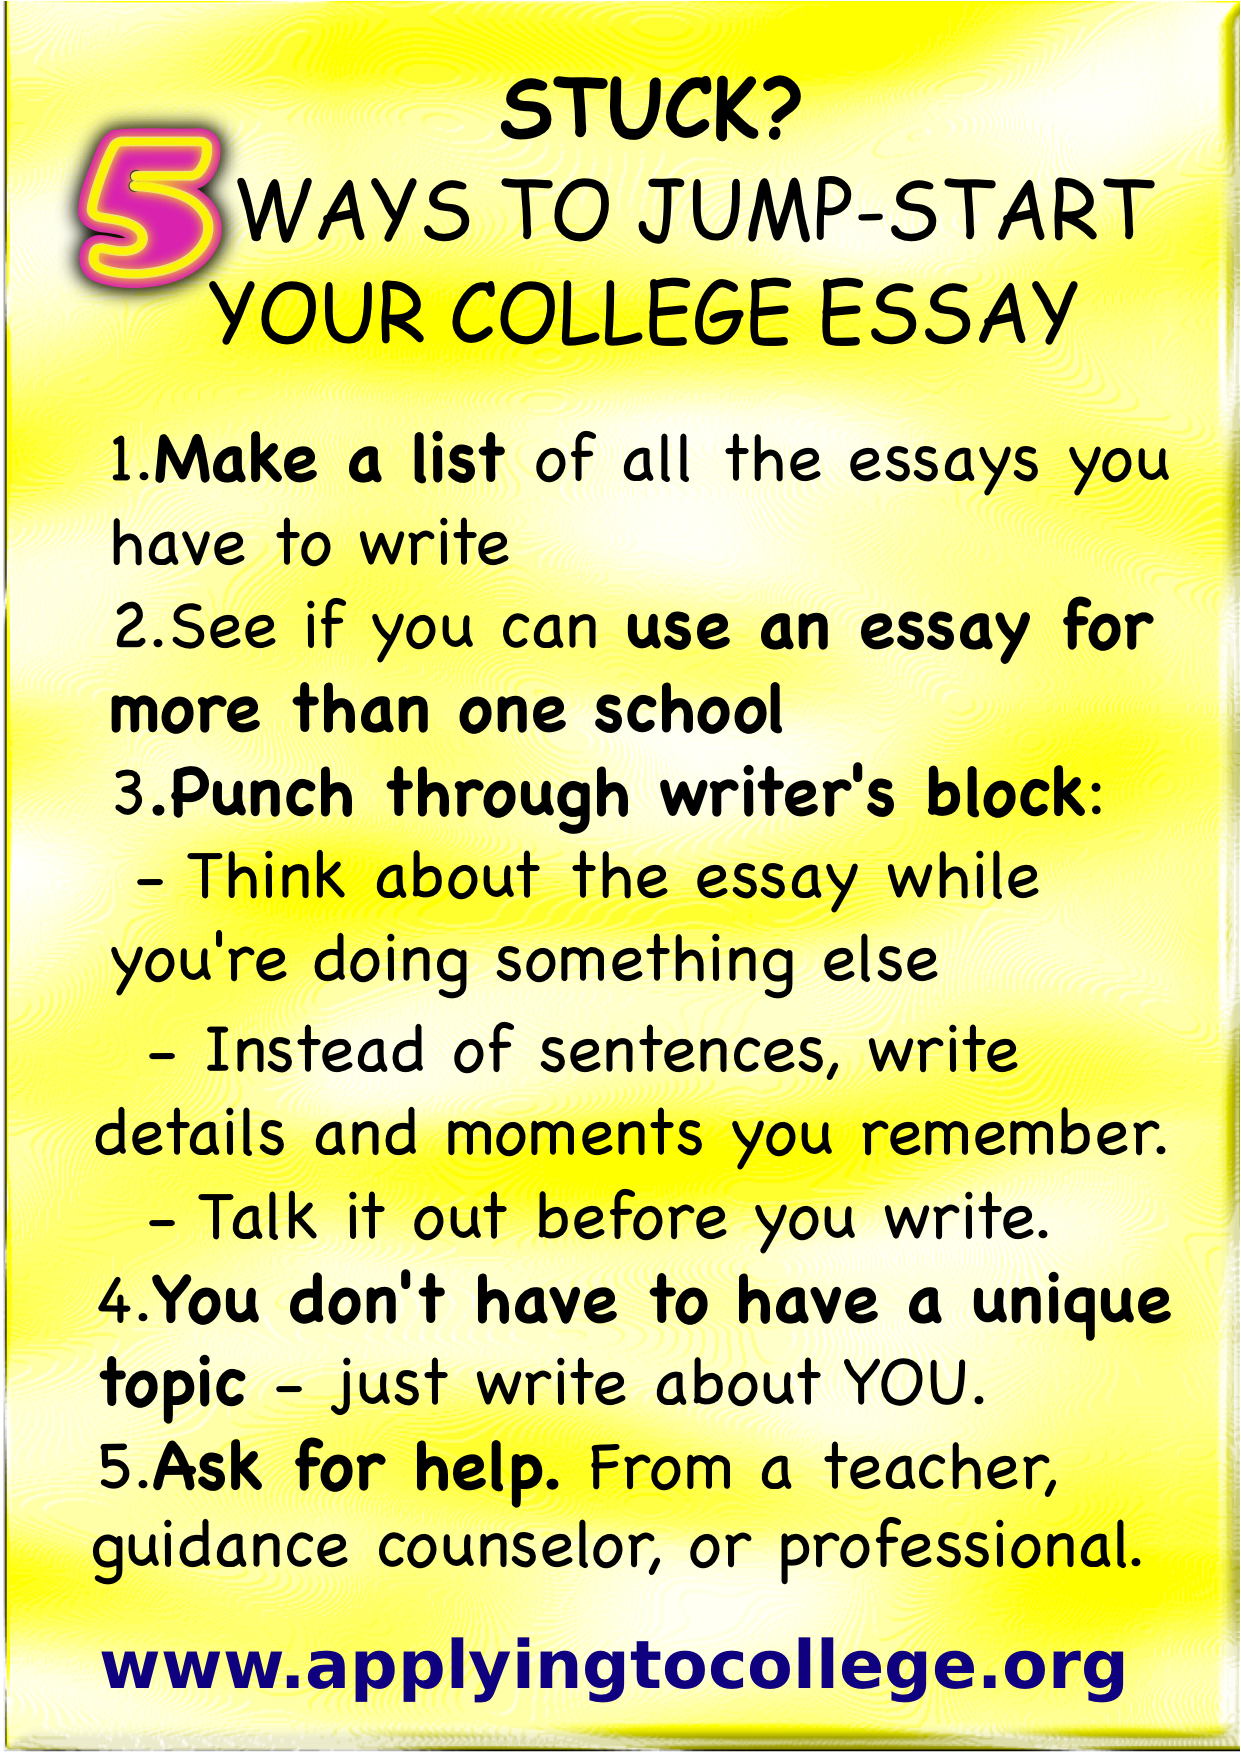 tips for writing a good college admission essay how to write a good college admission letter cover letter templates how to get taller how